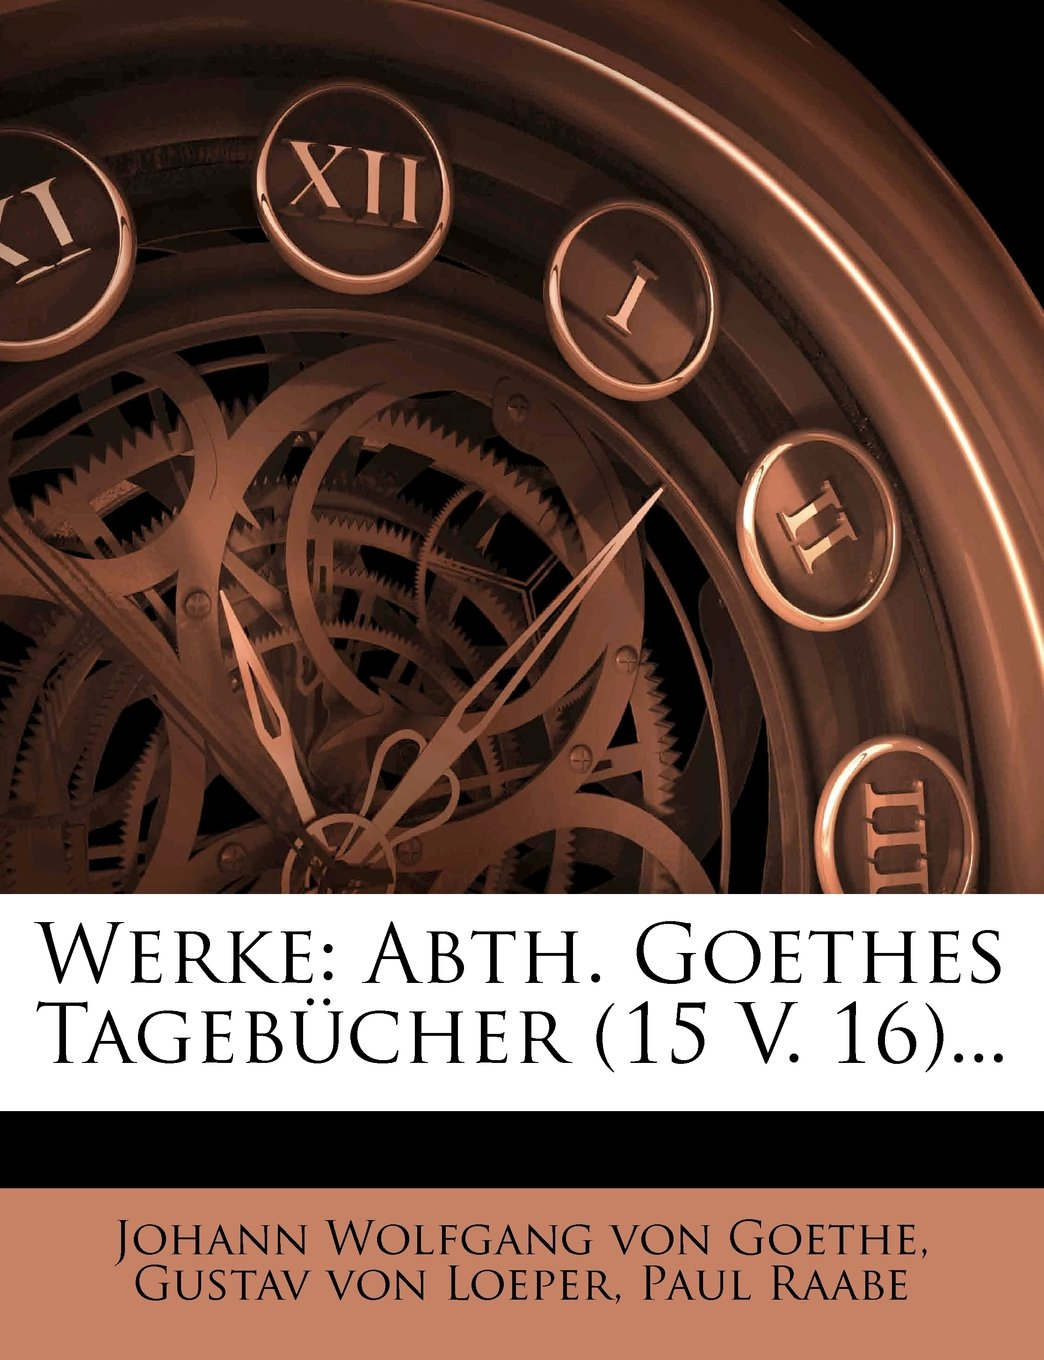 Download Werke: Abth. Goethes Tagebucher (15 V. 16)... (German Edition) PDF